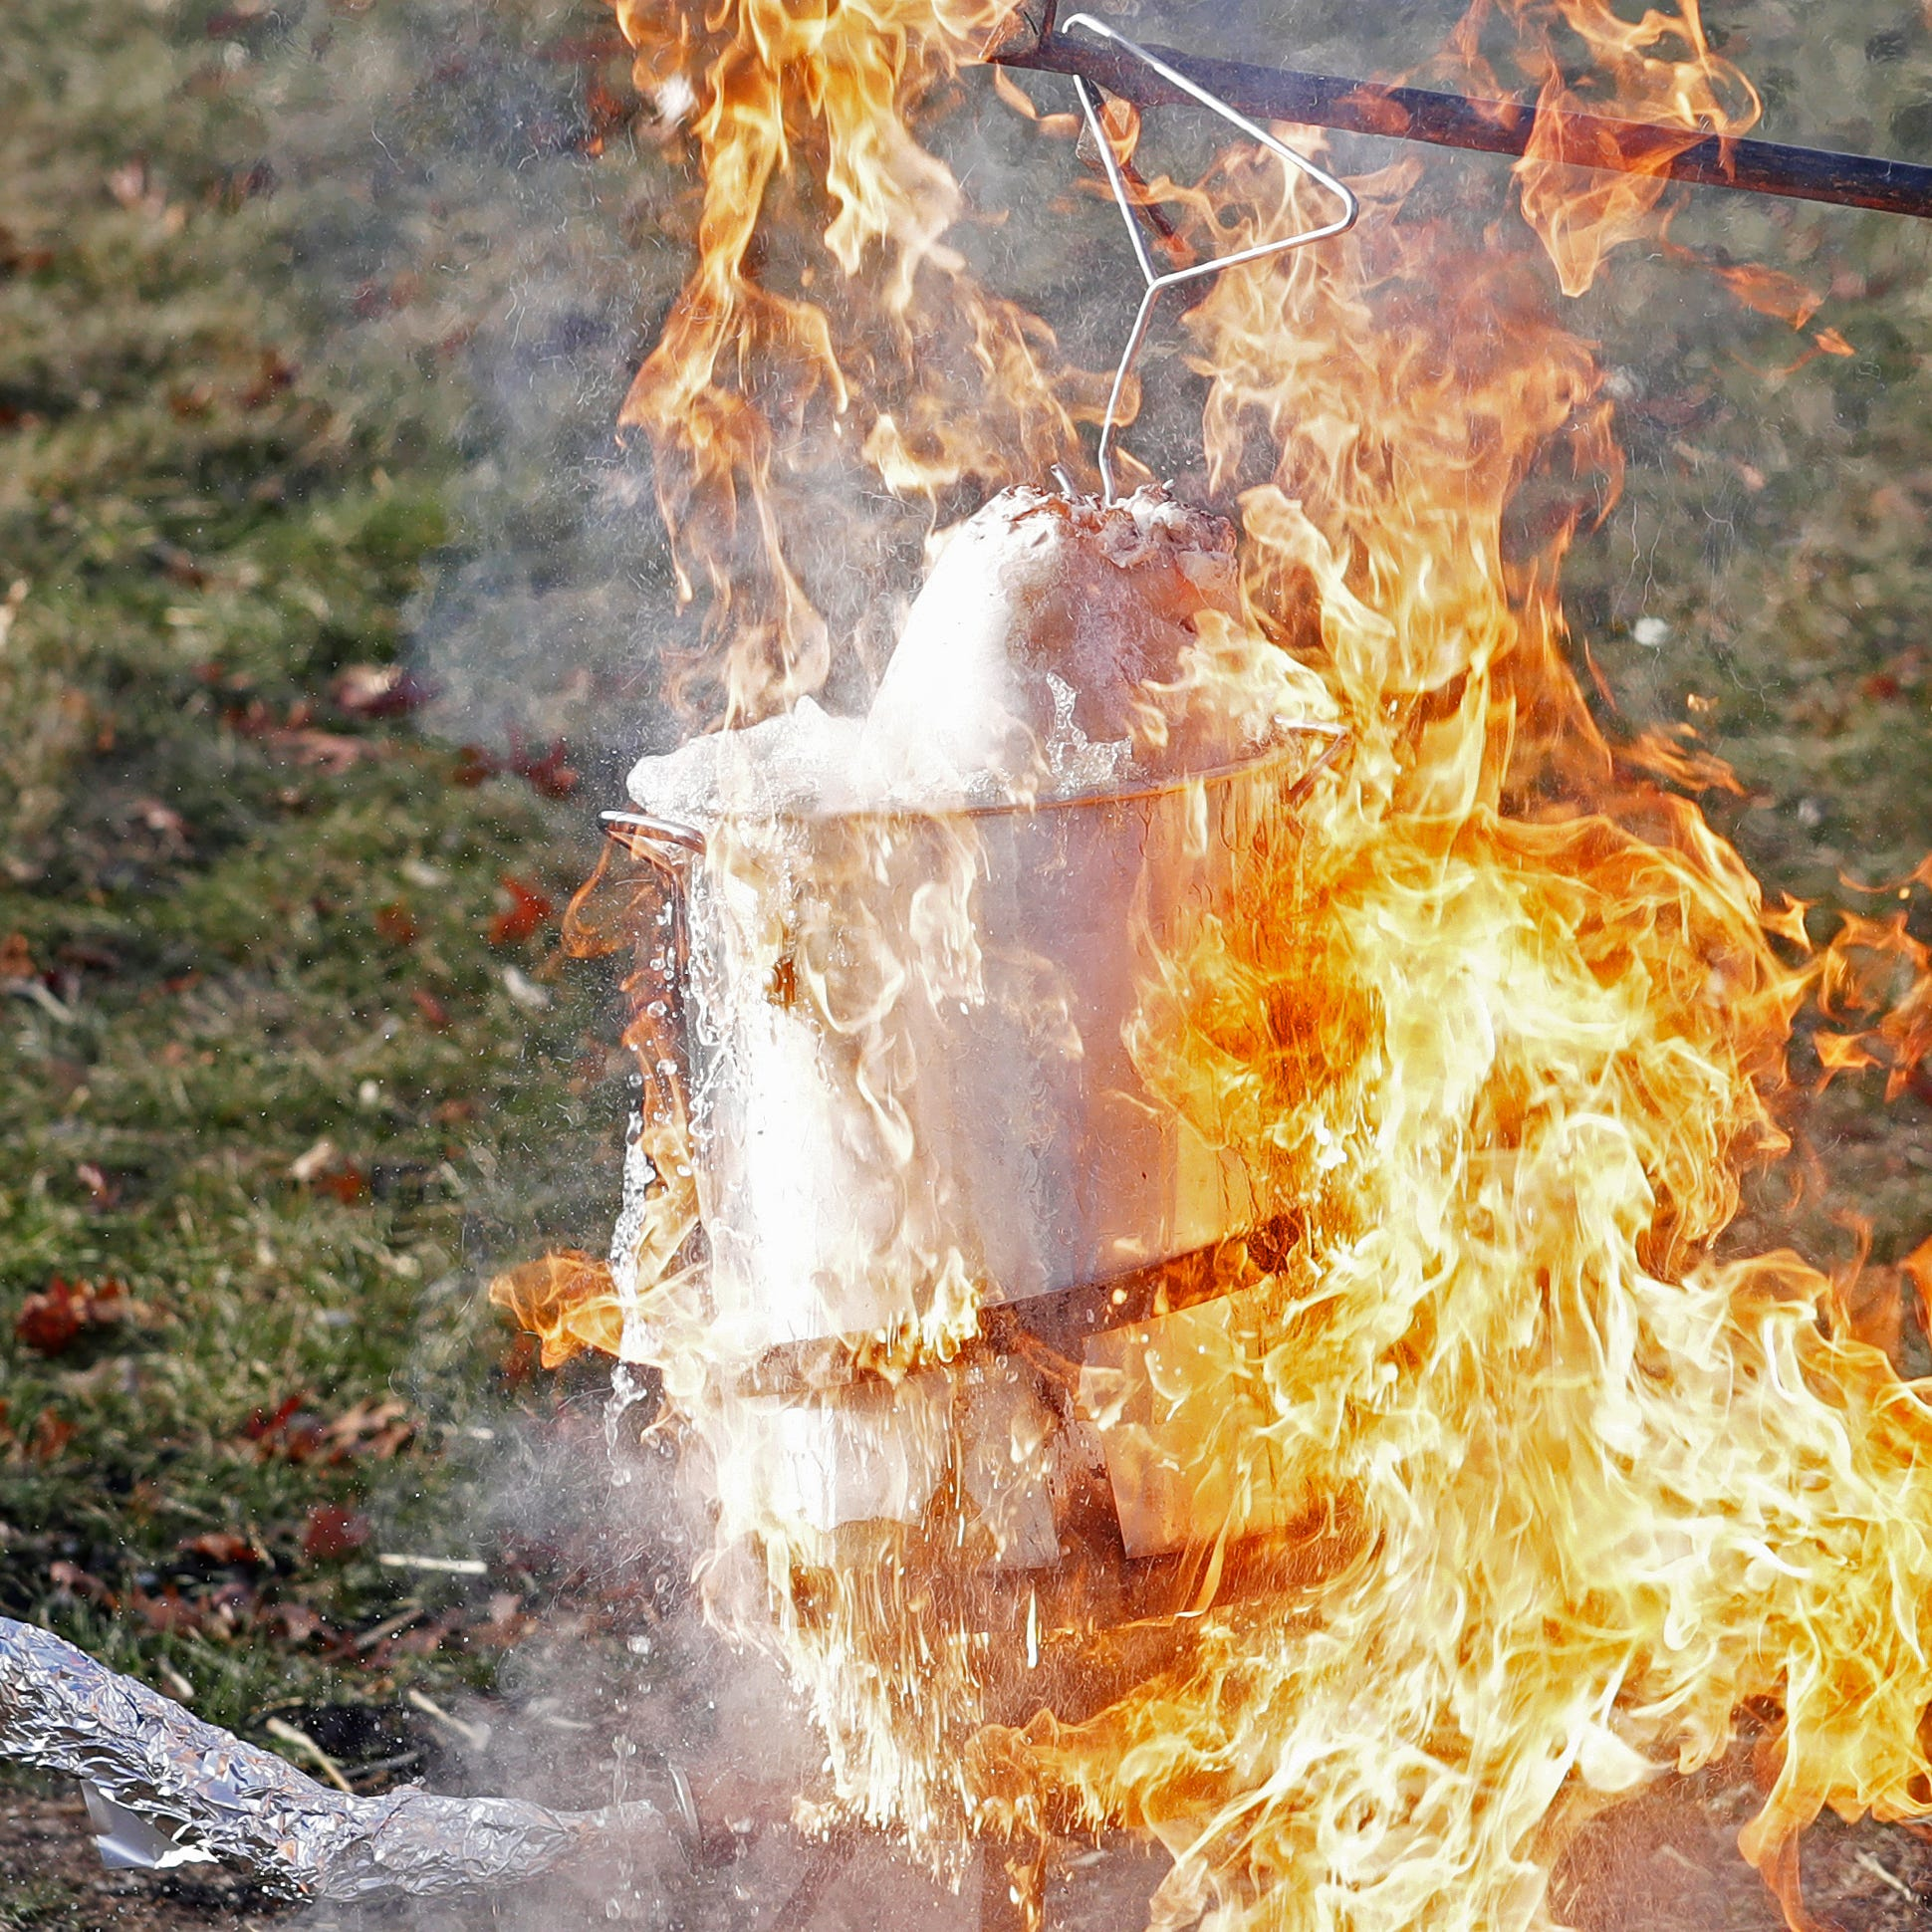 Turkey Day is here. Here's how to avoid setting your Thanksgiving feast on fire